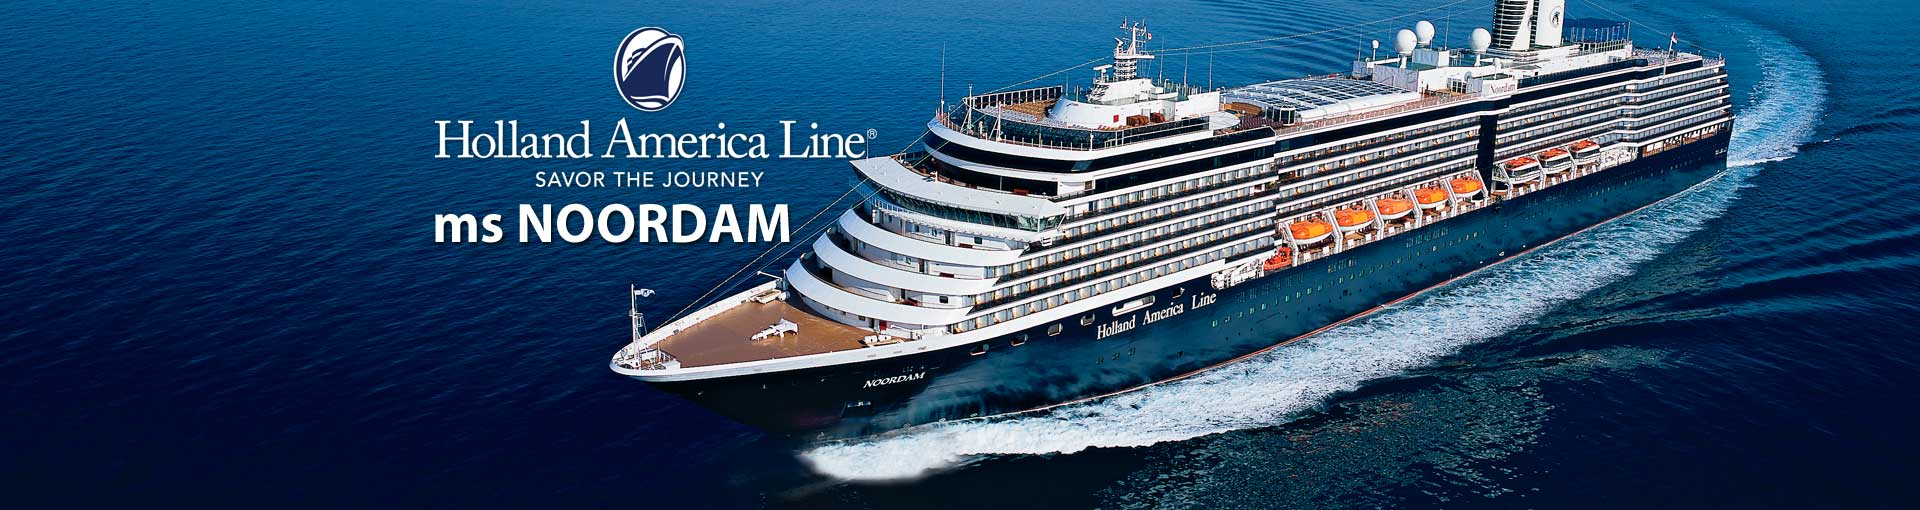 Holland America ms Noordam cruise ship